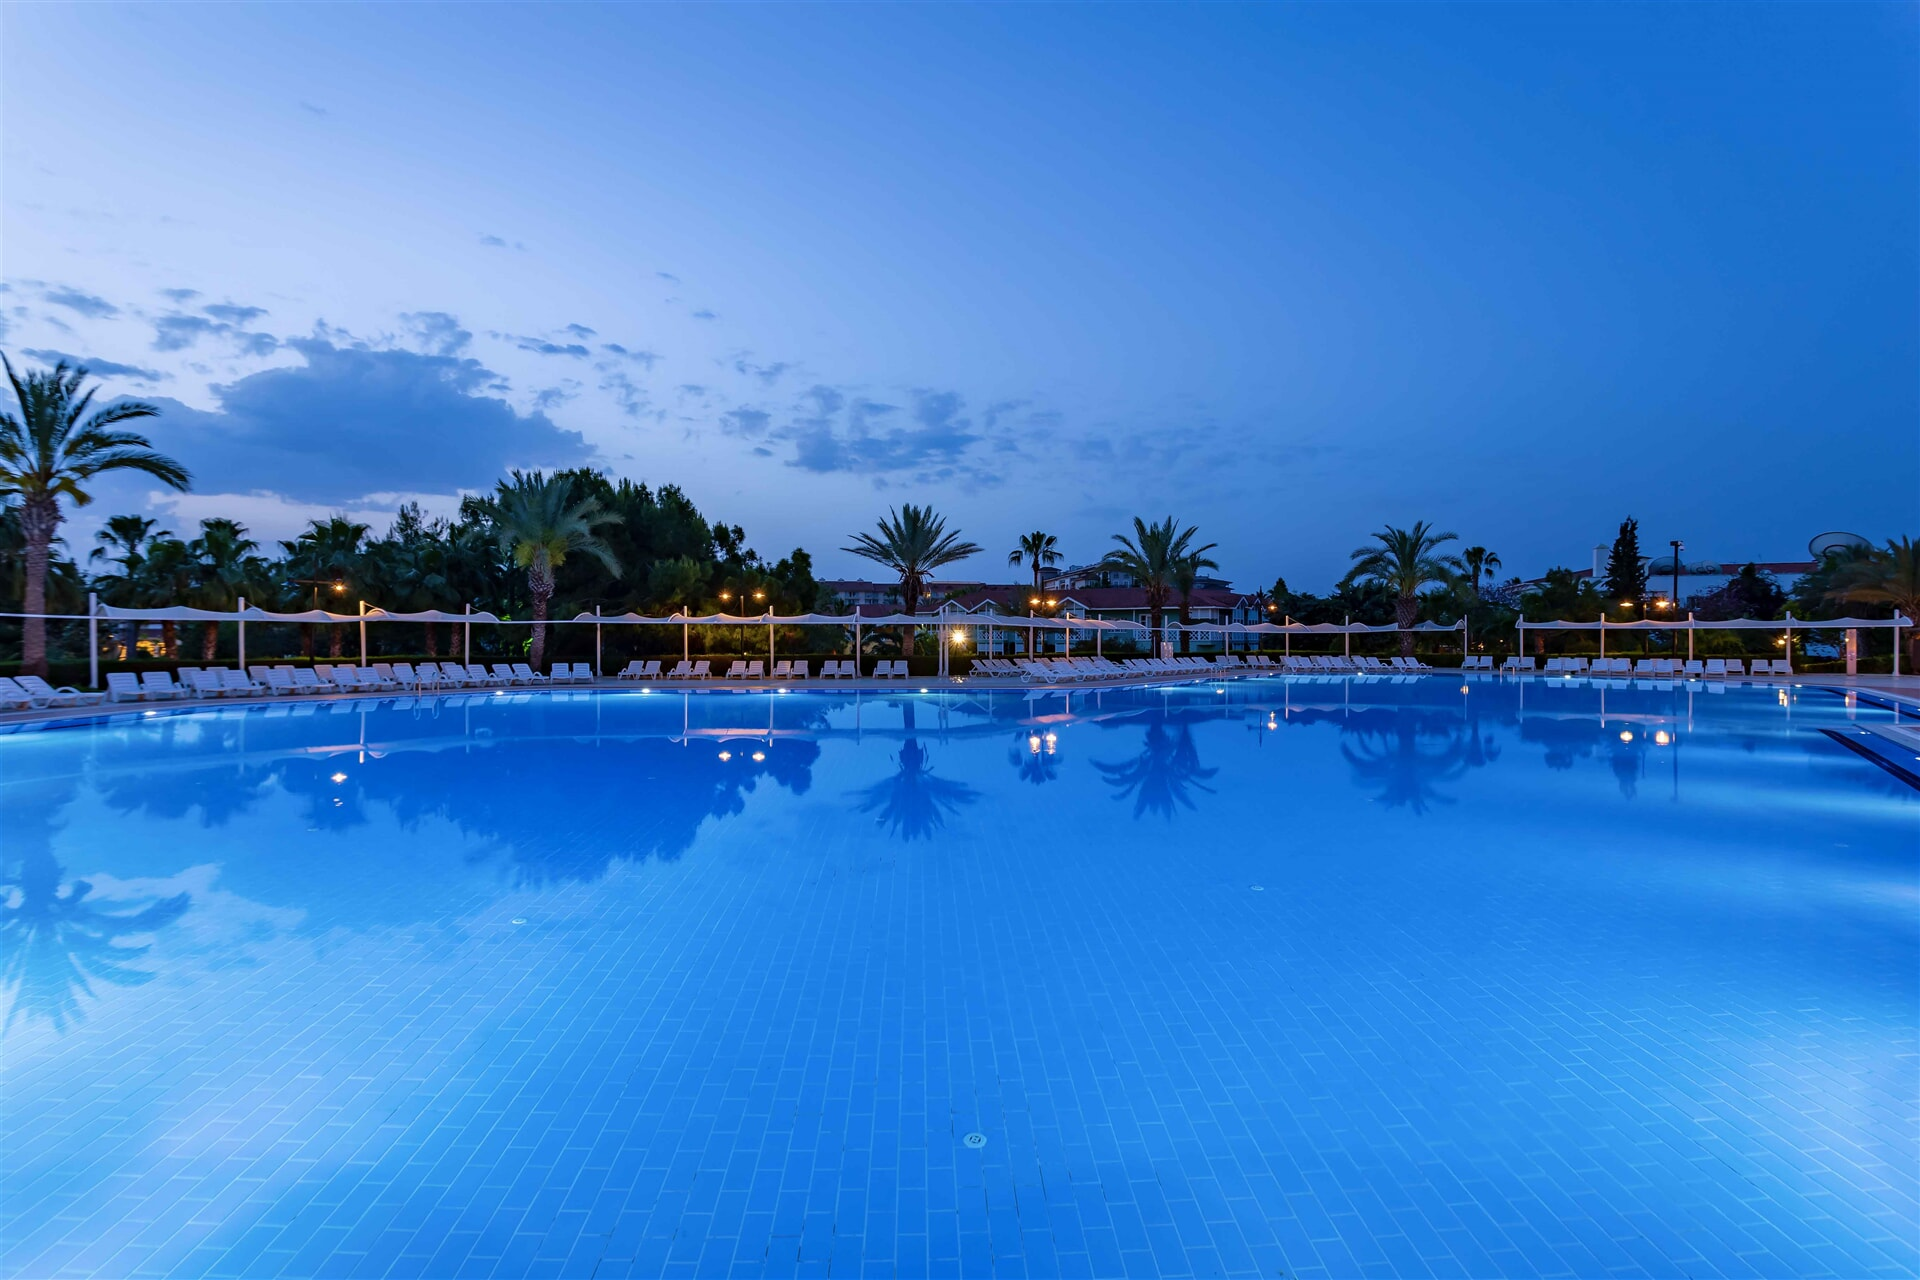 EUPHORIA AEGEAN RESORT AND THERMAL HOTEL – Activities